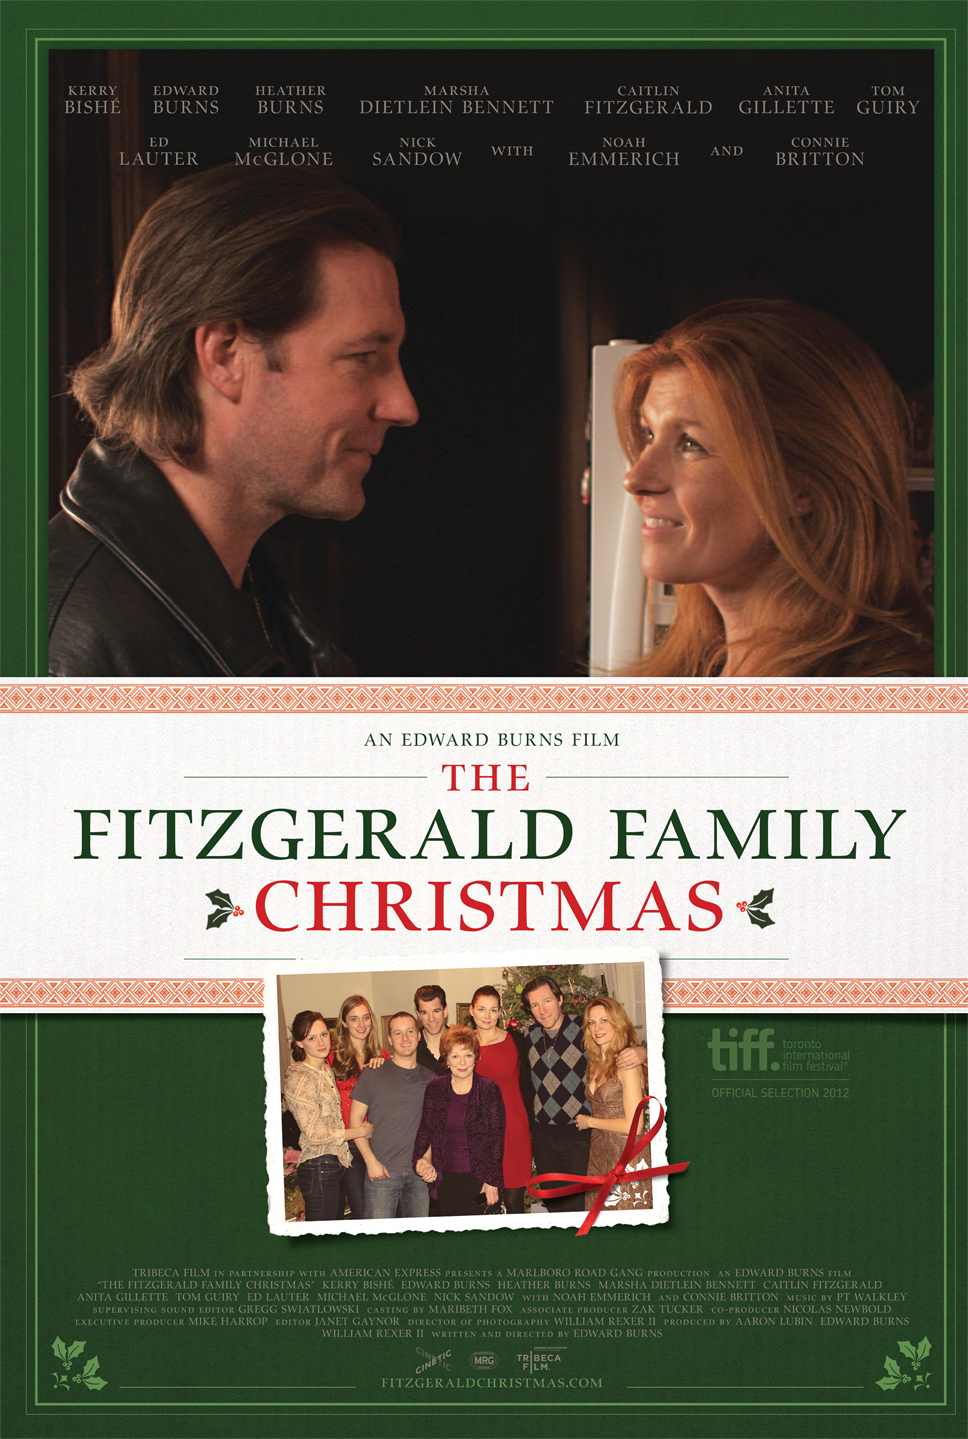 the fitzgerald family christmas 2012 imdb - Fitzgerald Christmas